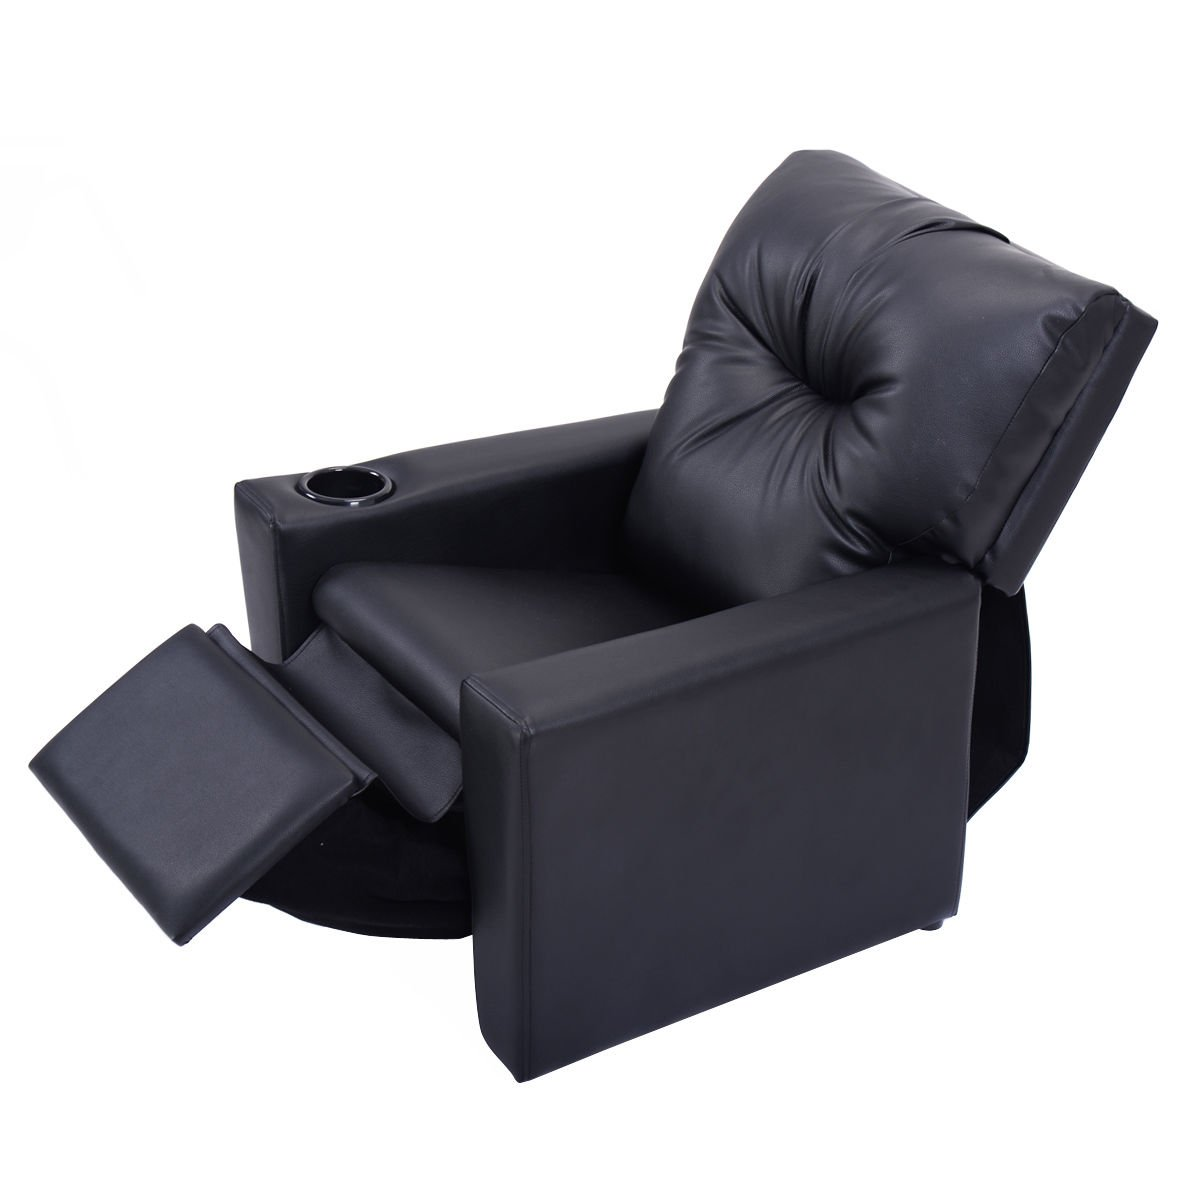 New Kids Sofa Manual Recliner Leather Ergonomic Lounge Children Gift w/Cup Holder